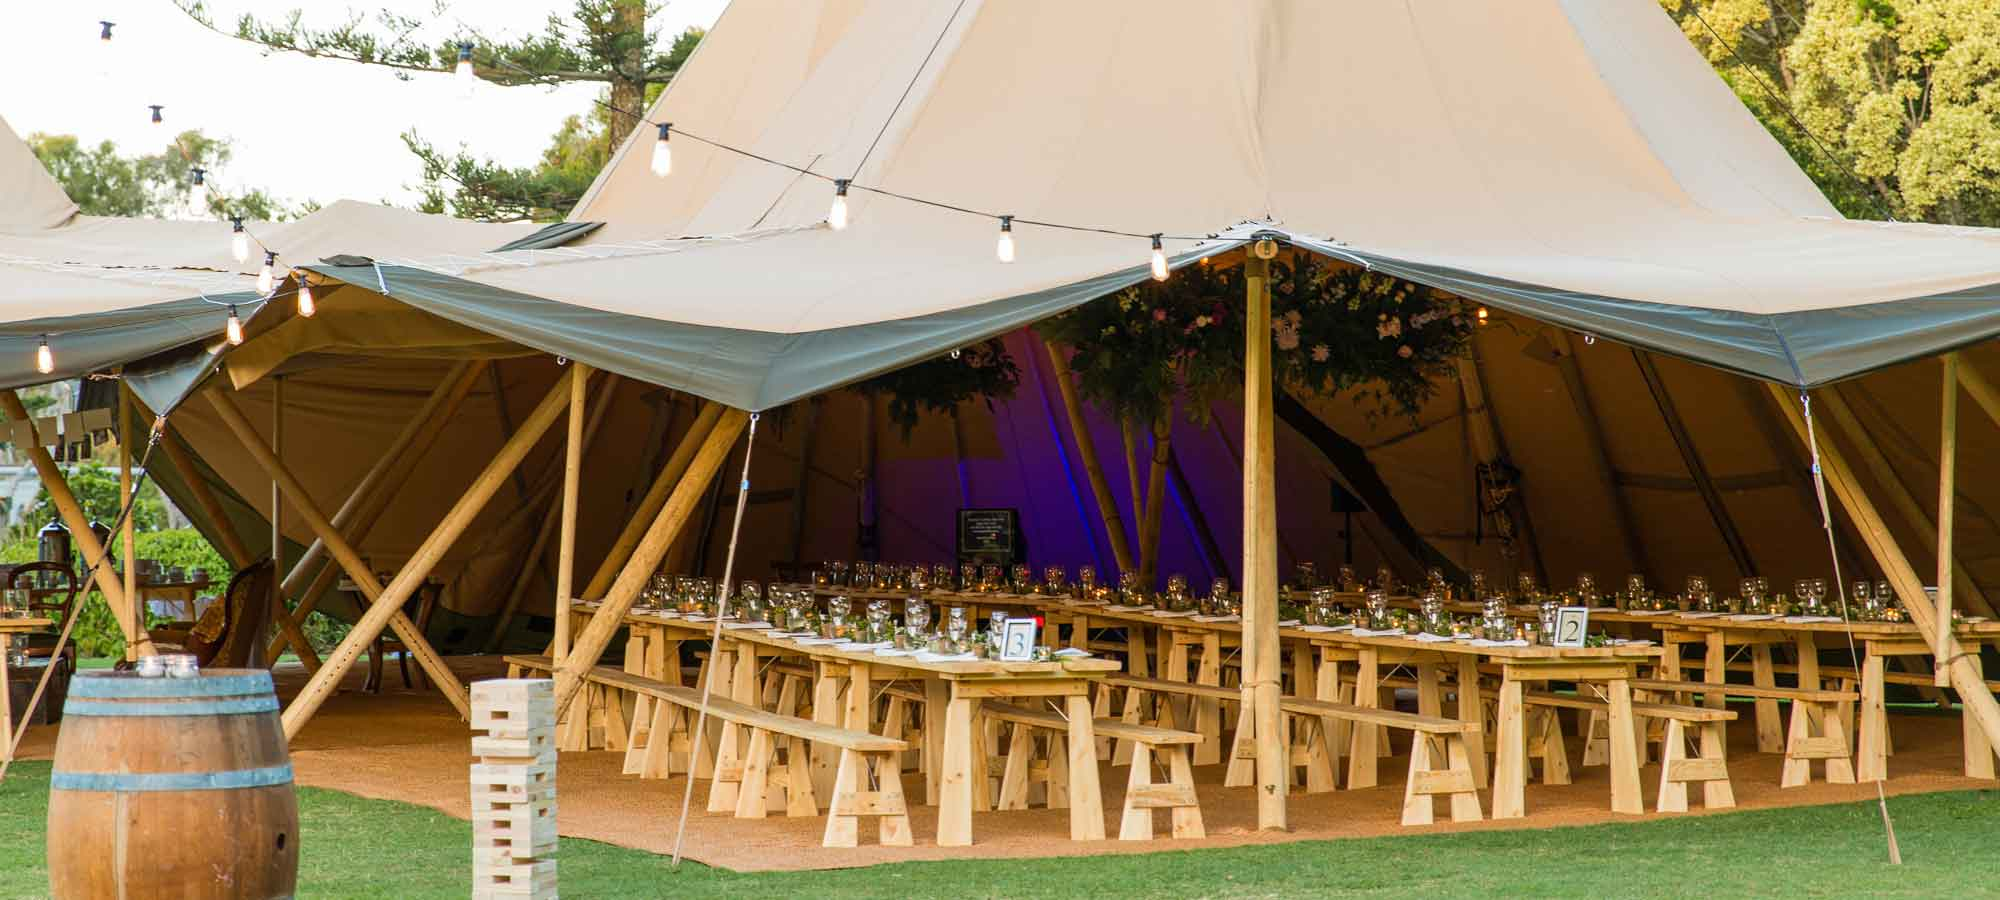 Tentipi tables and benches - kata tent to purchase